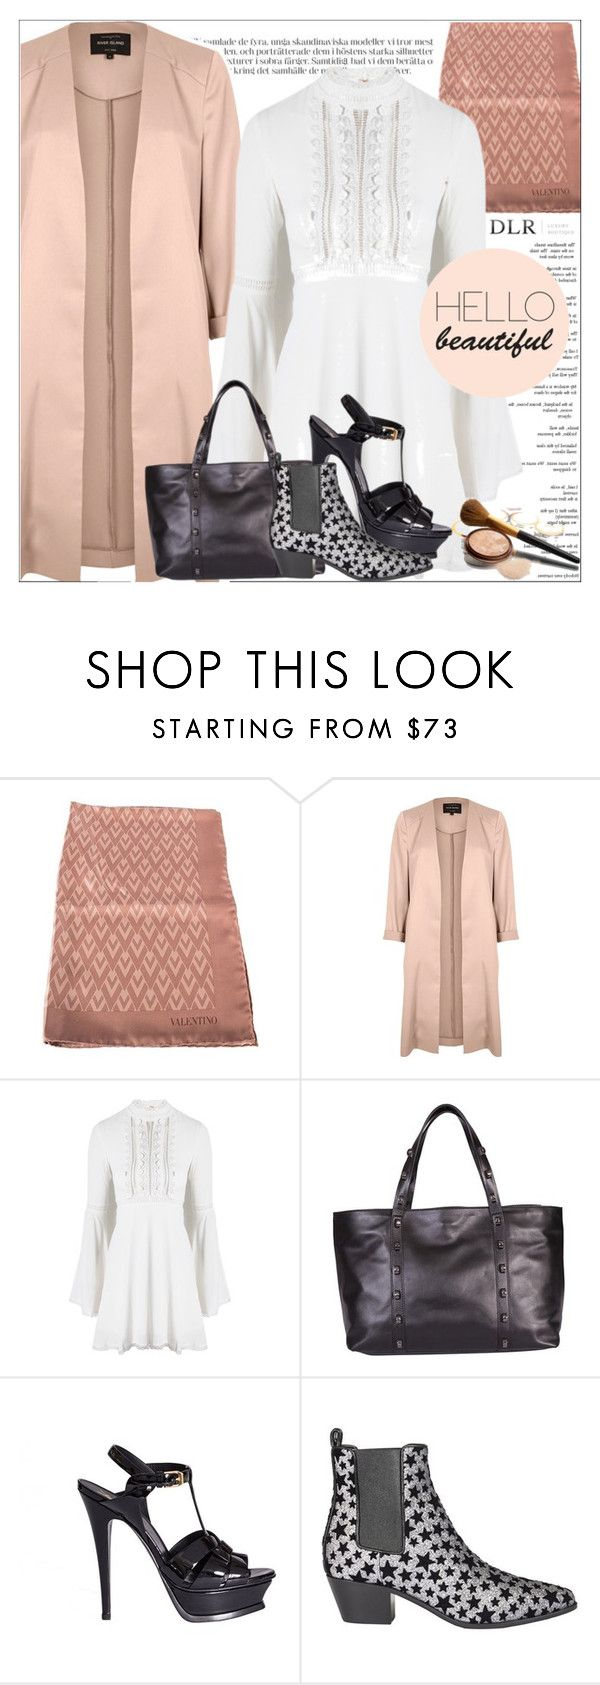 """""""DLRBOUTIQUE.COM"""" by mirachu-1 on Polyvore featuring Valentino, River Island, For Love & Lemons, Borbonese, Yves Saint Laurent and CO"""